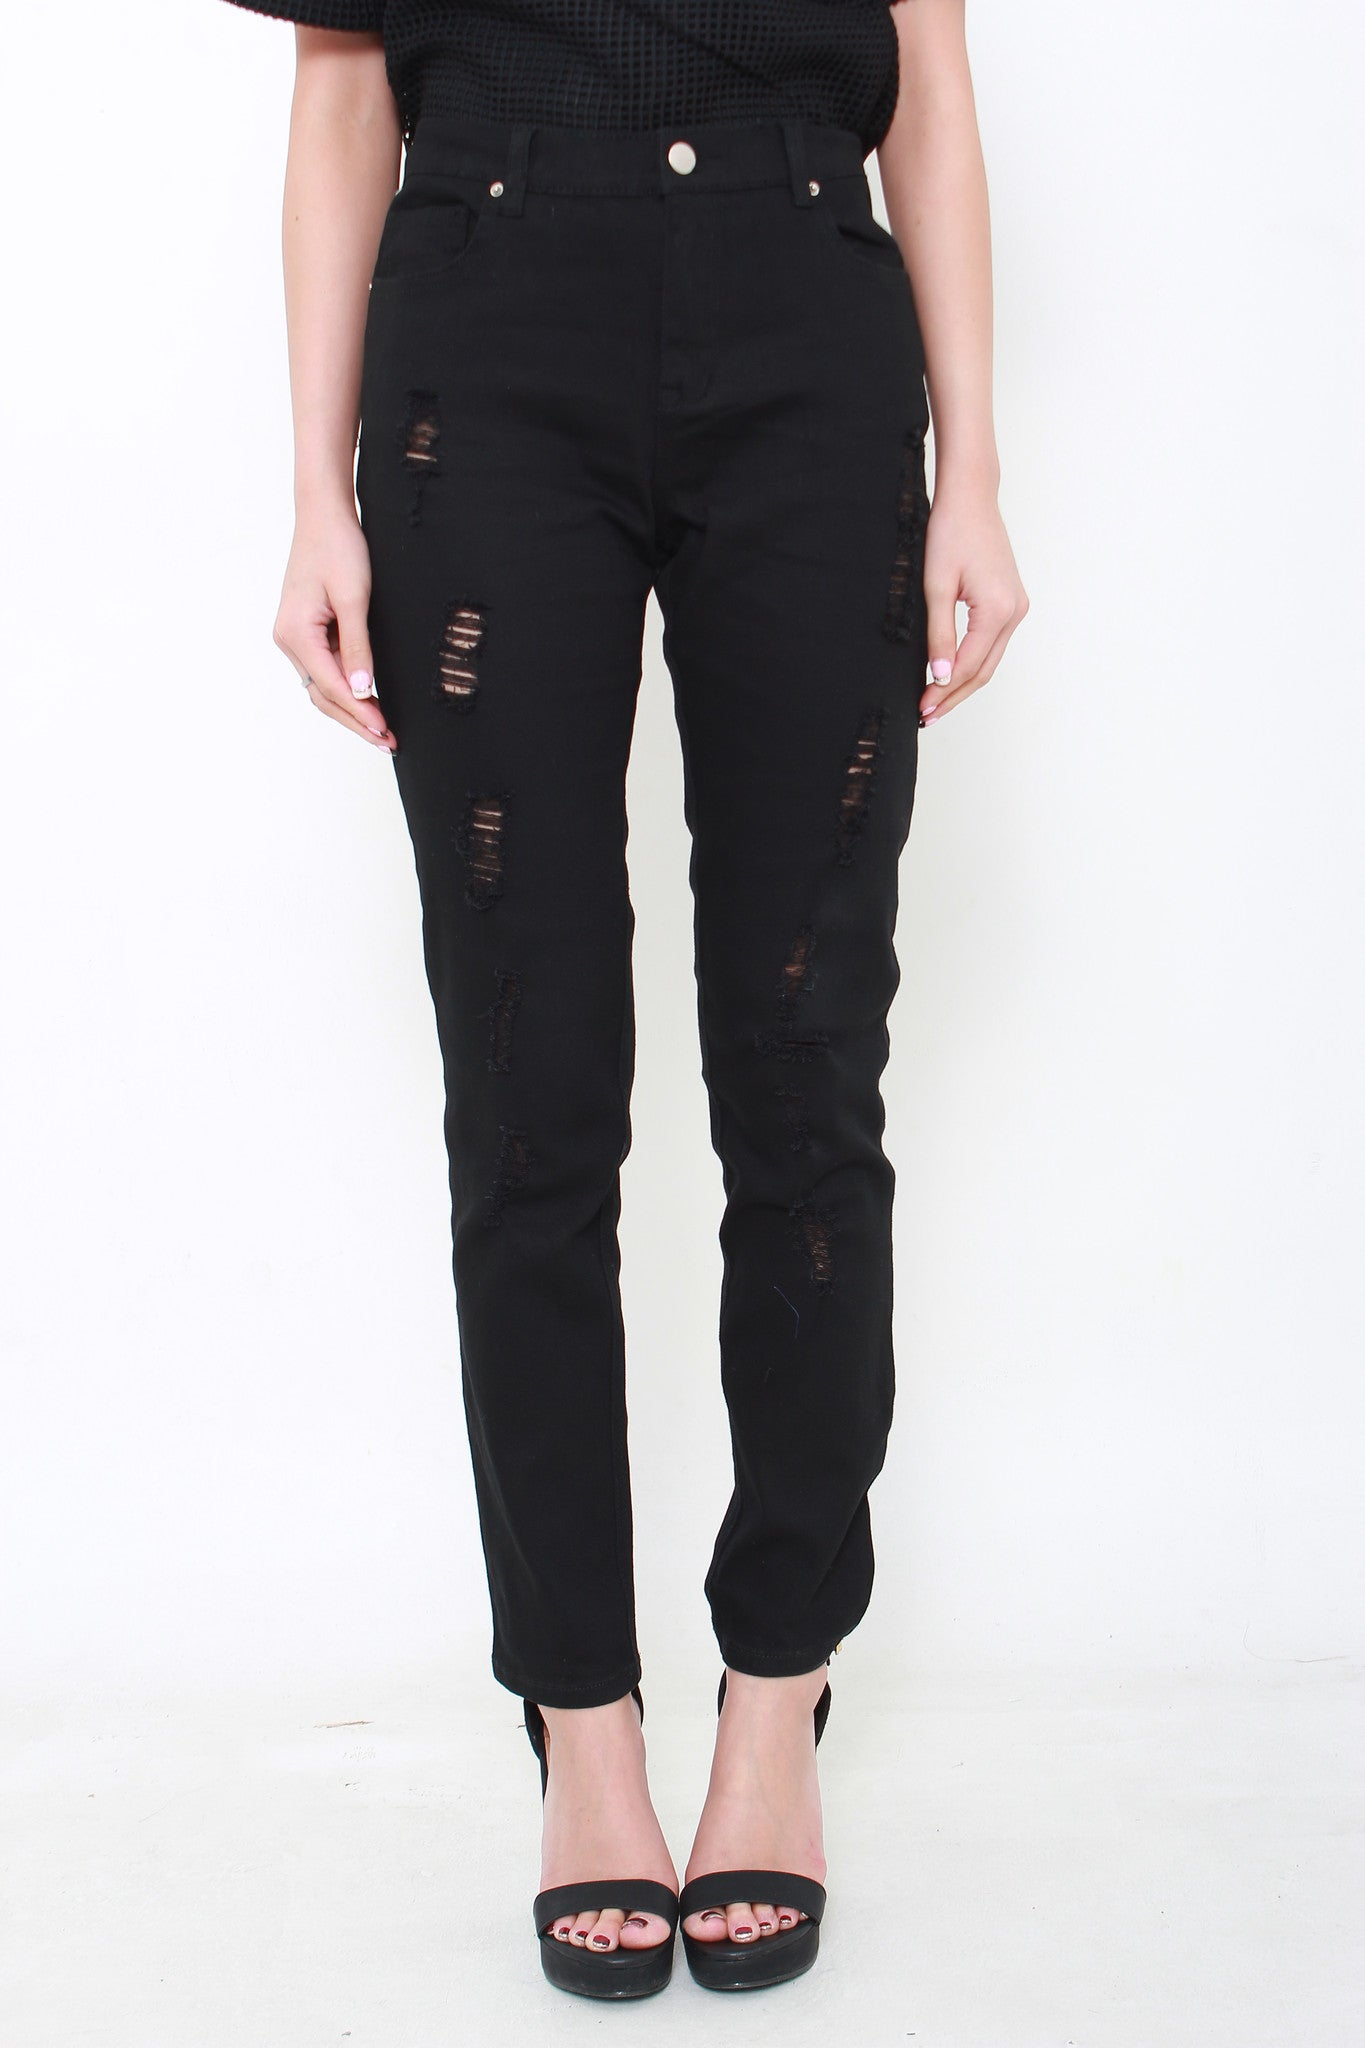 Rip It Up Jeans in Black